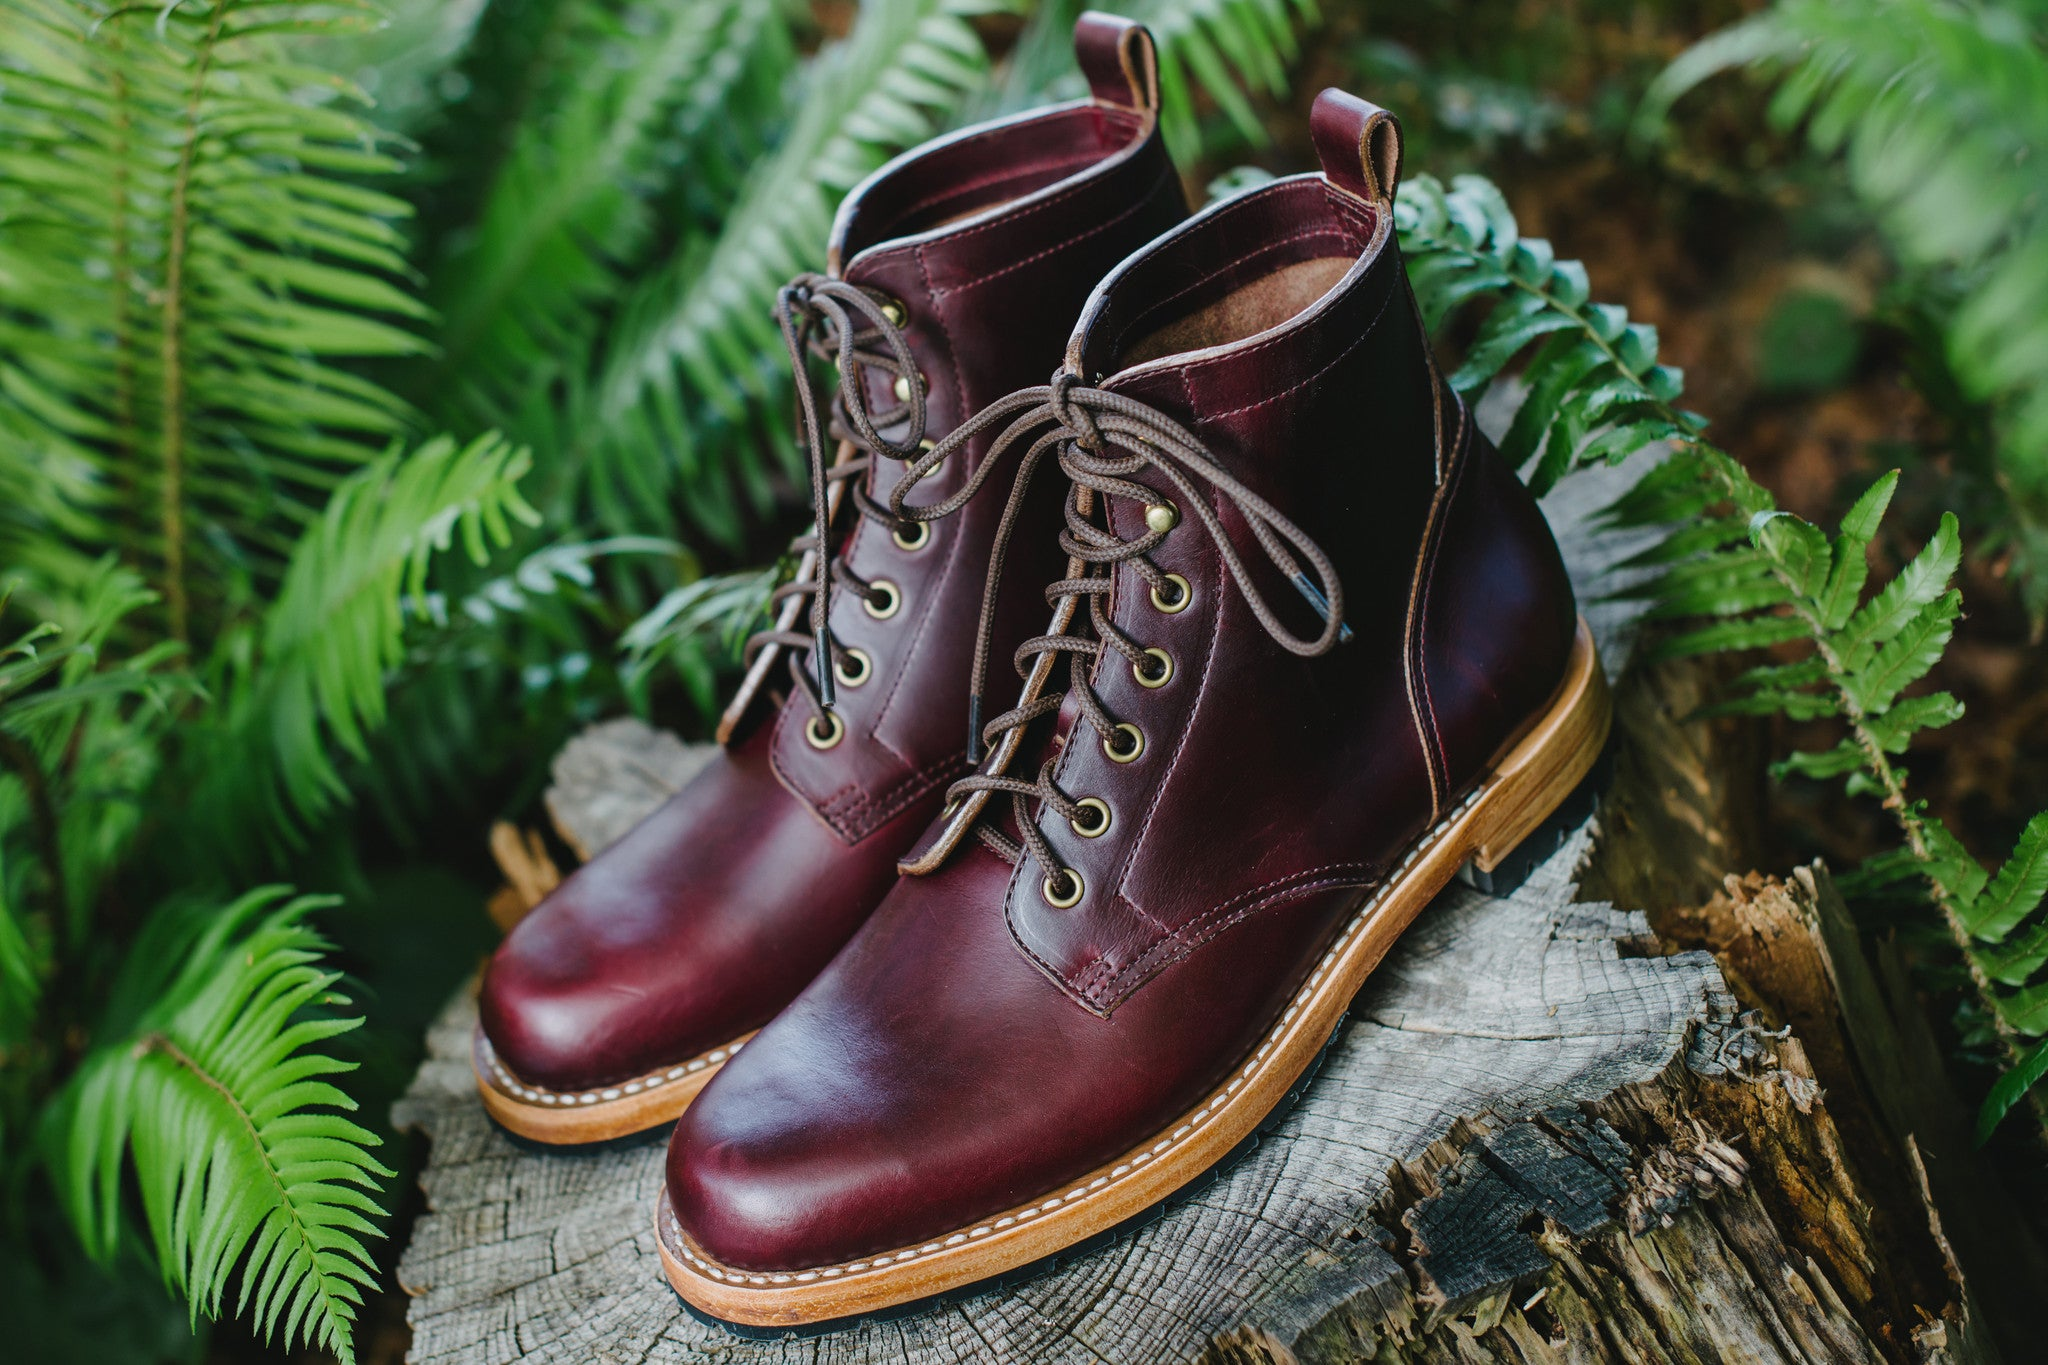 1907 Derby Boot - July 5, 2016 Release